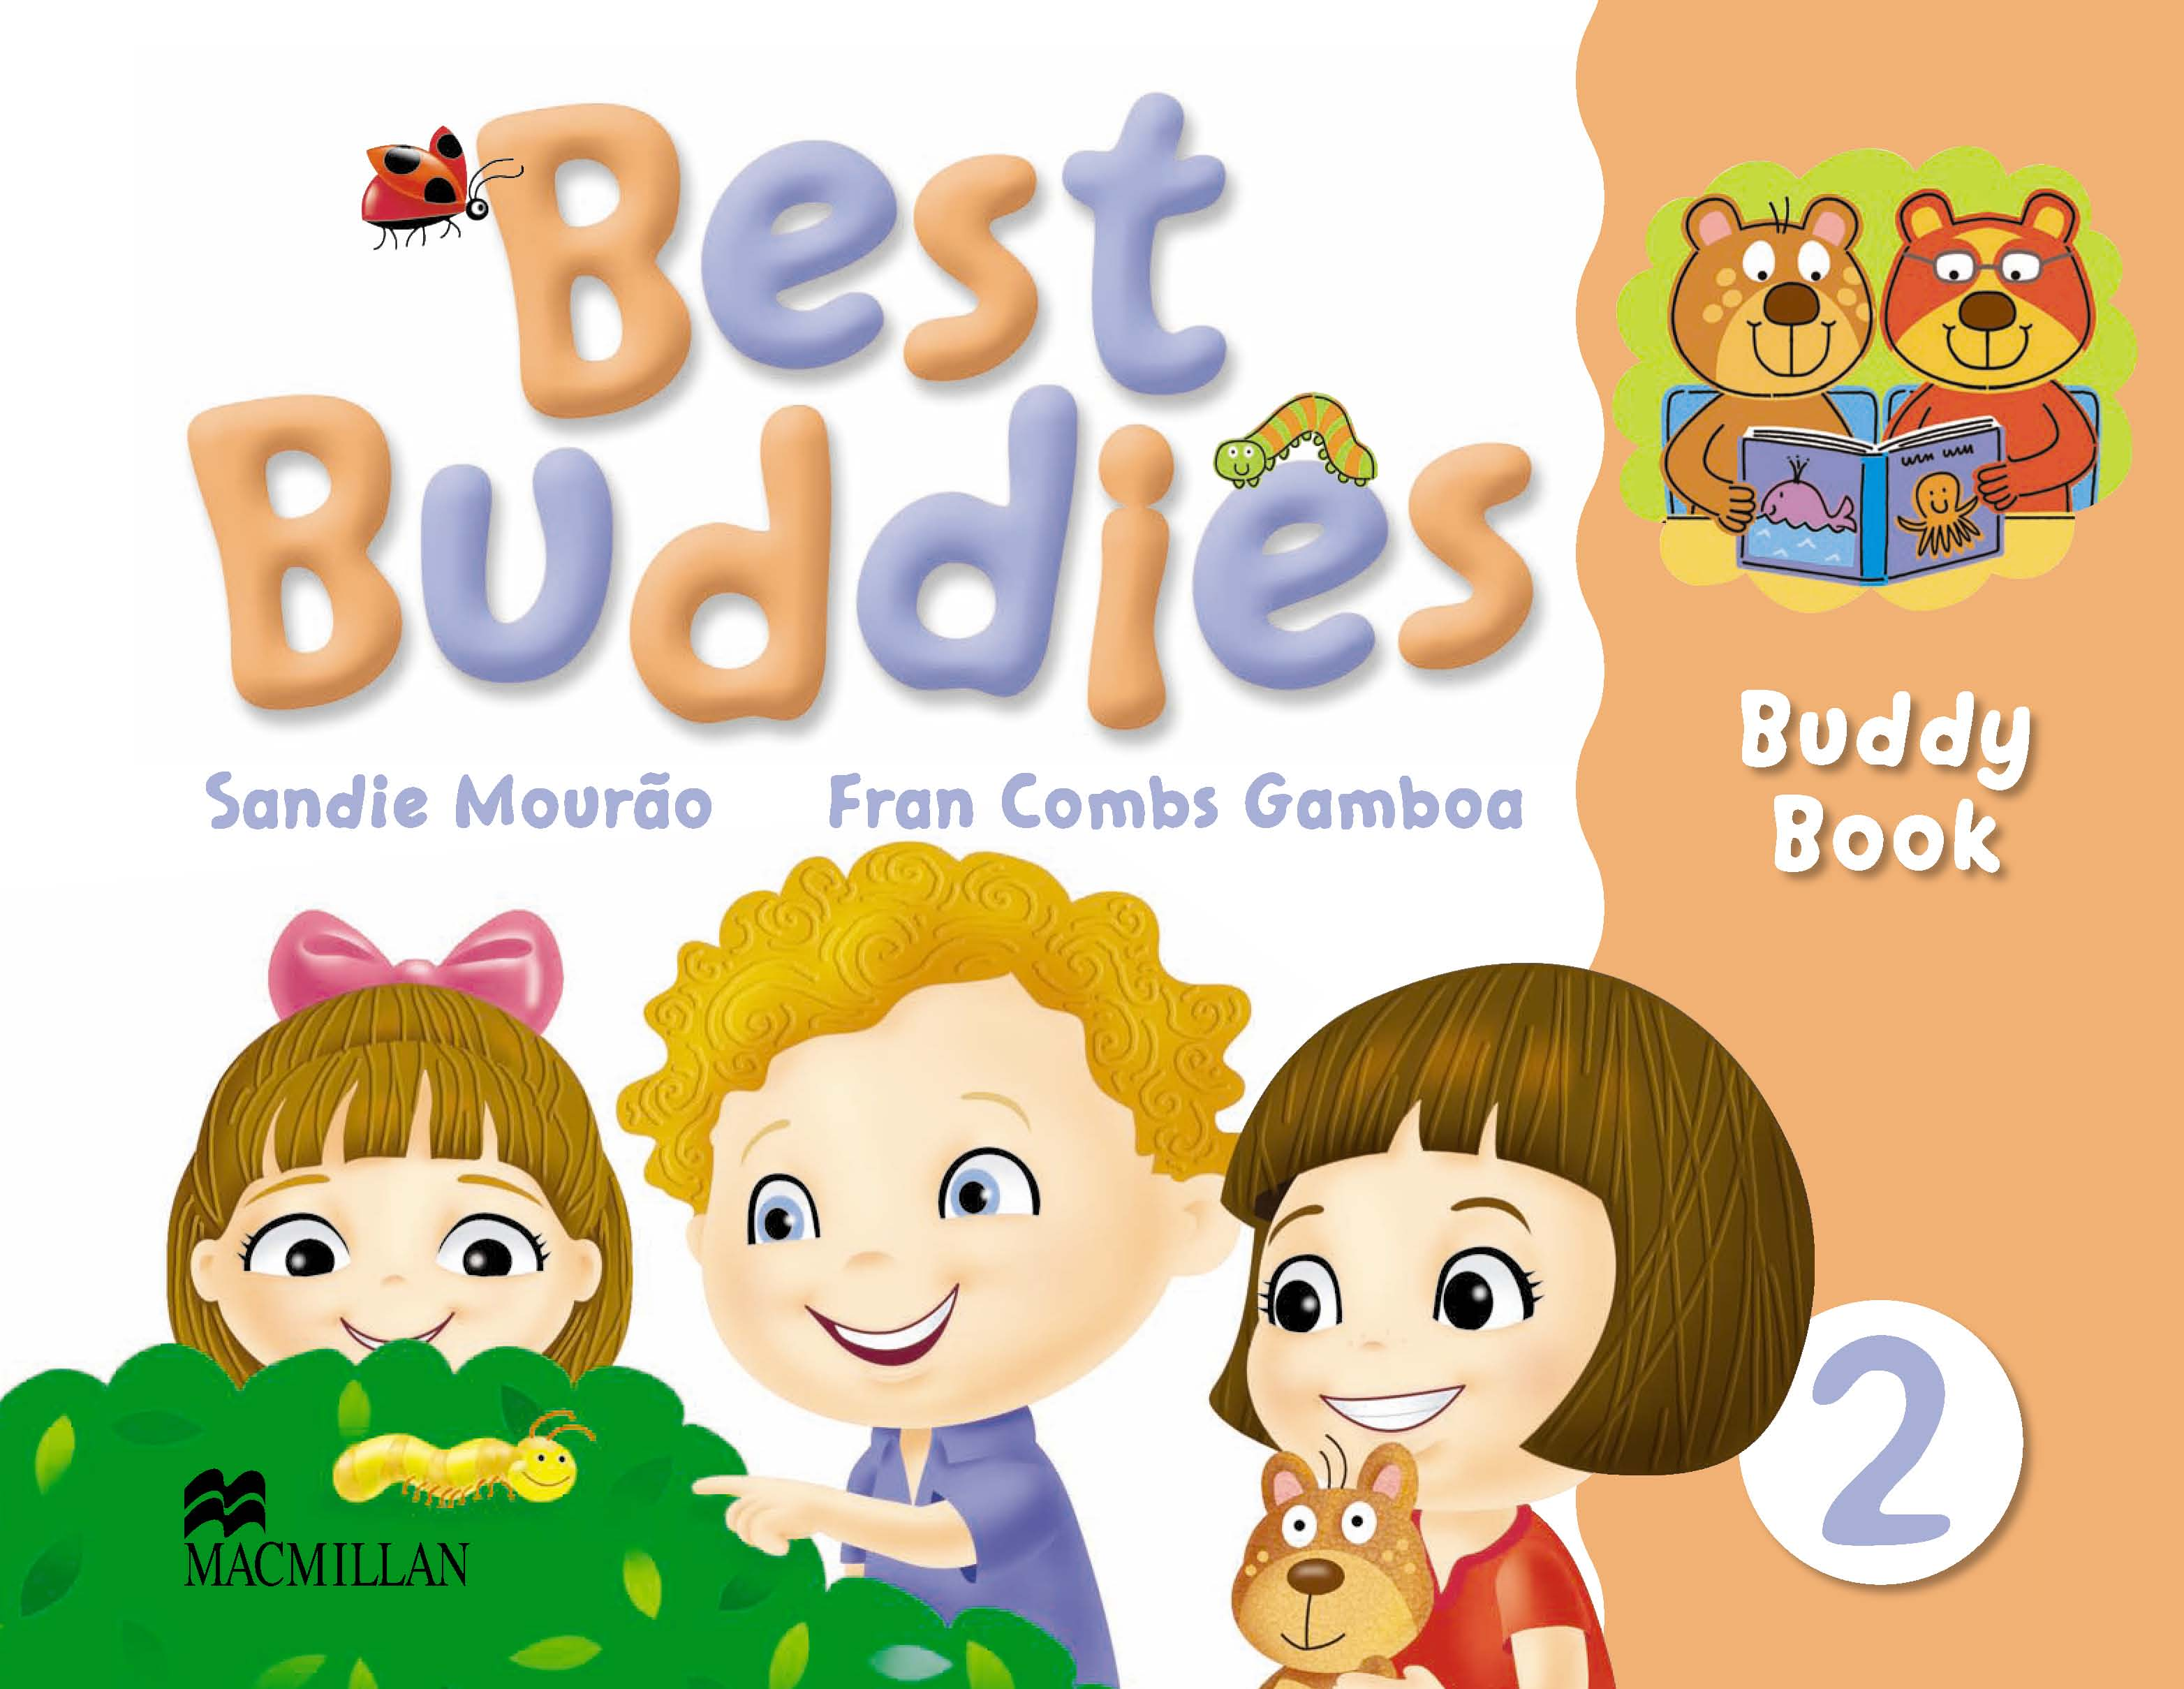 Best Buddies 2 Buddy Book